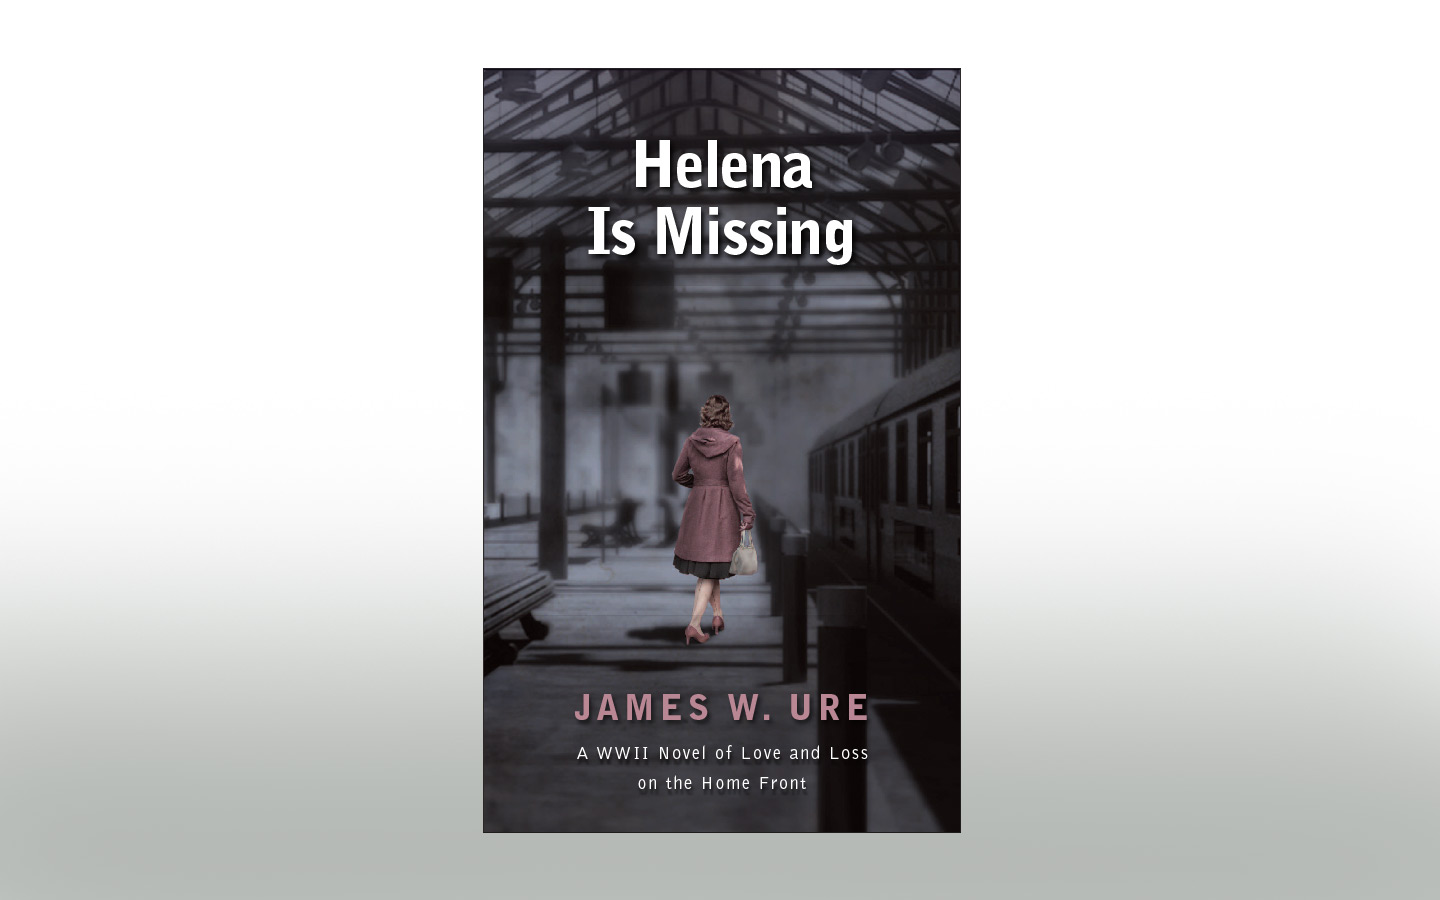 Helena Is Missing